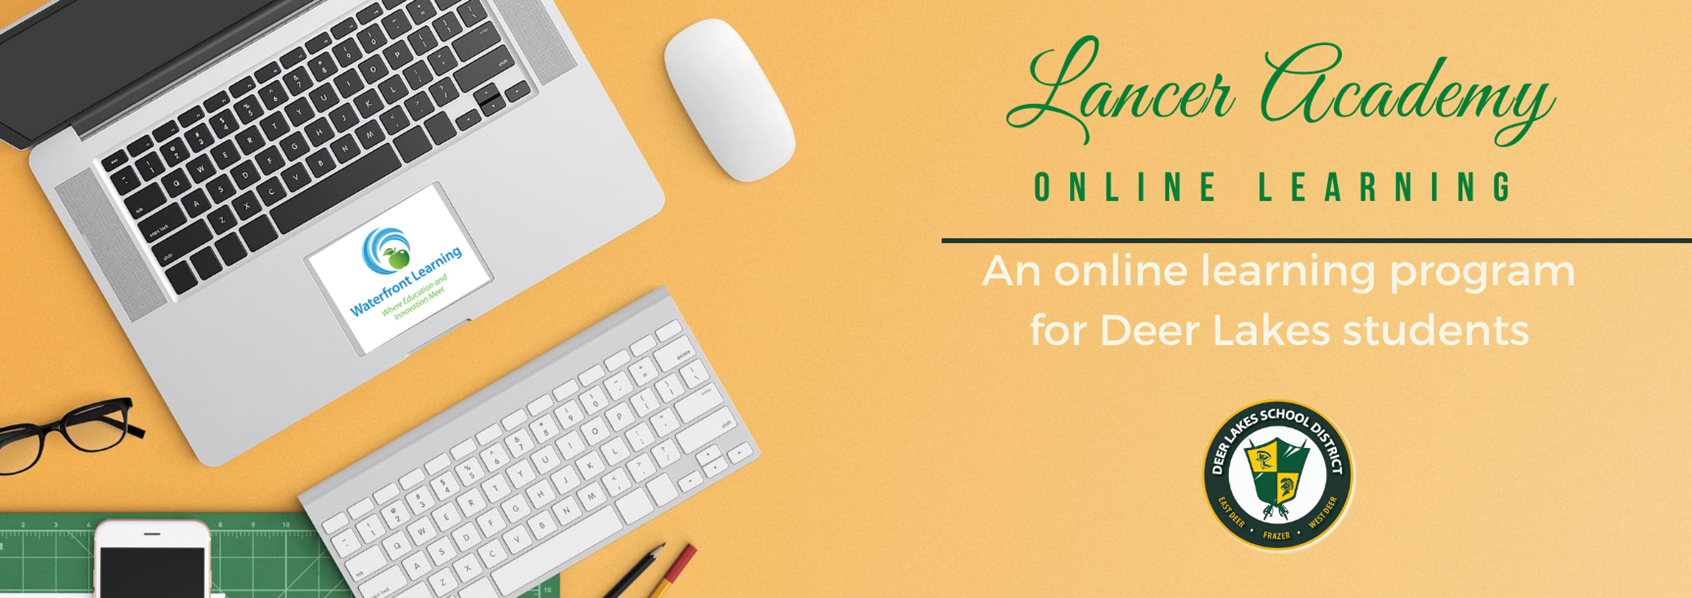 Lancer Academy - An online learning program for Deer Lakes students